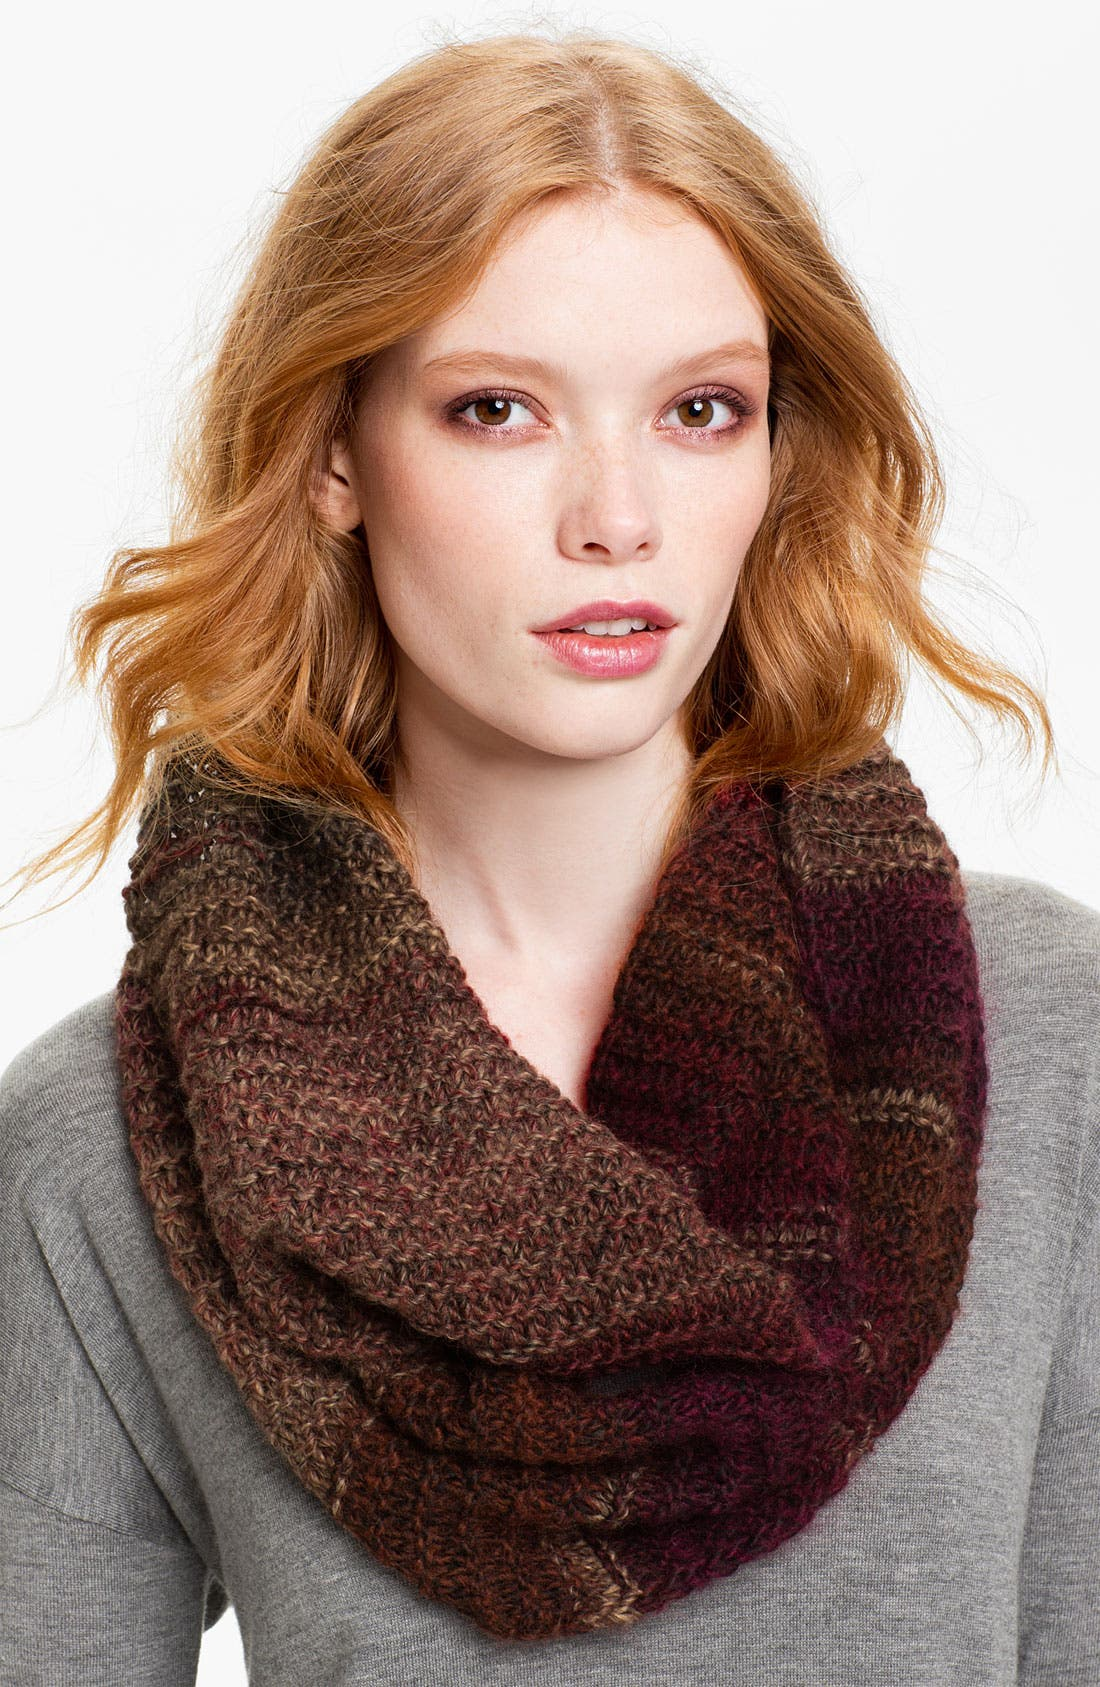 Alternate Image 1 Selected - Nordstrom Knit Infinity Scarf